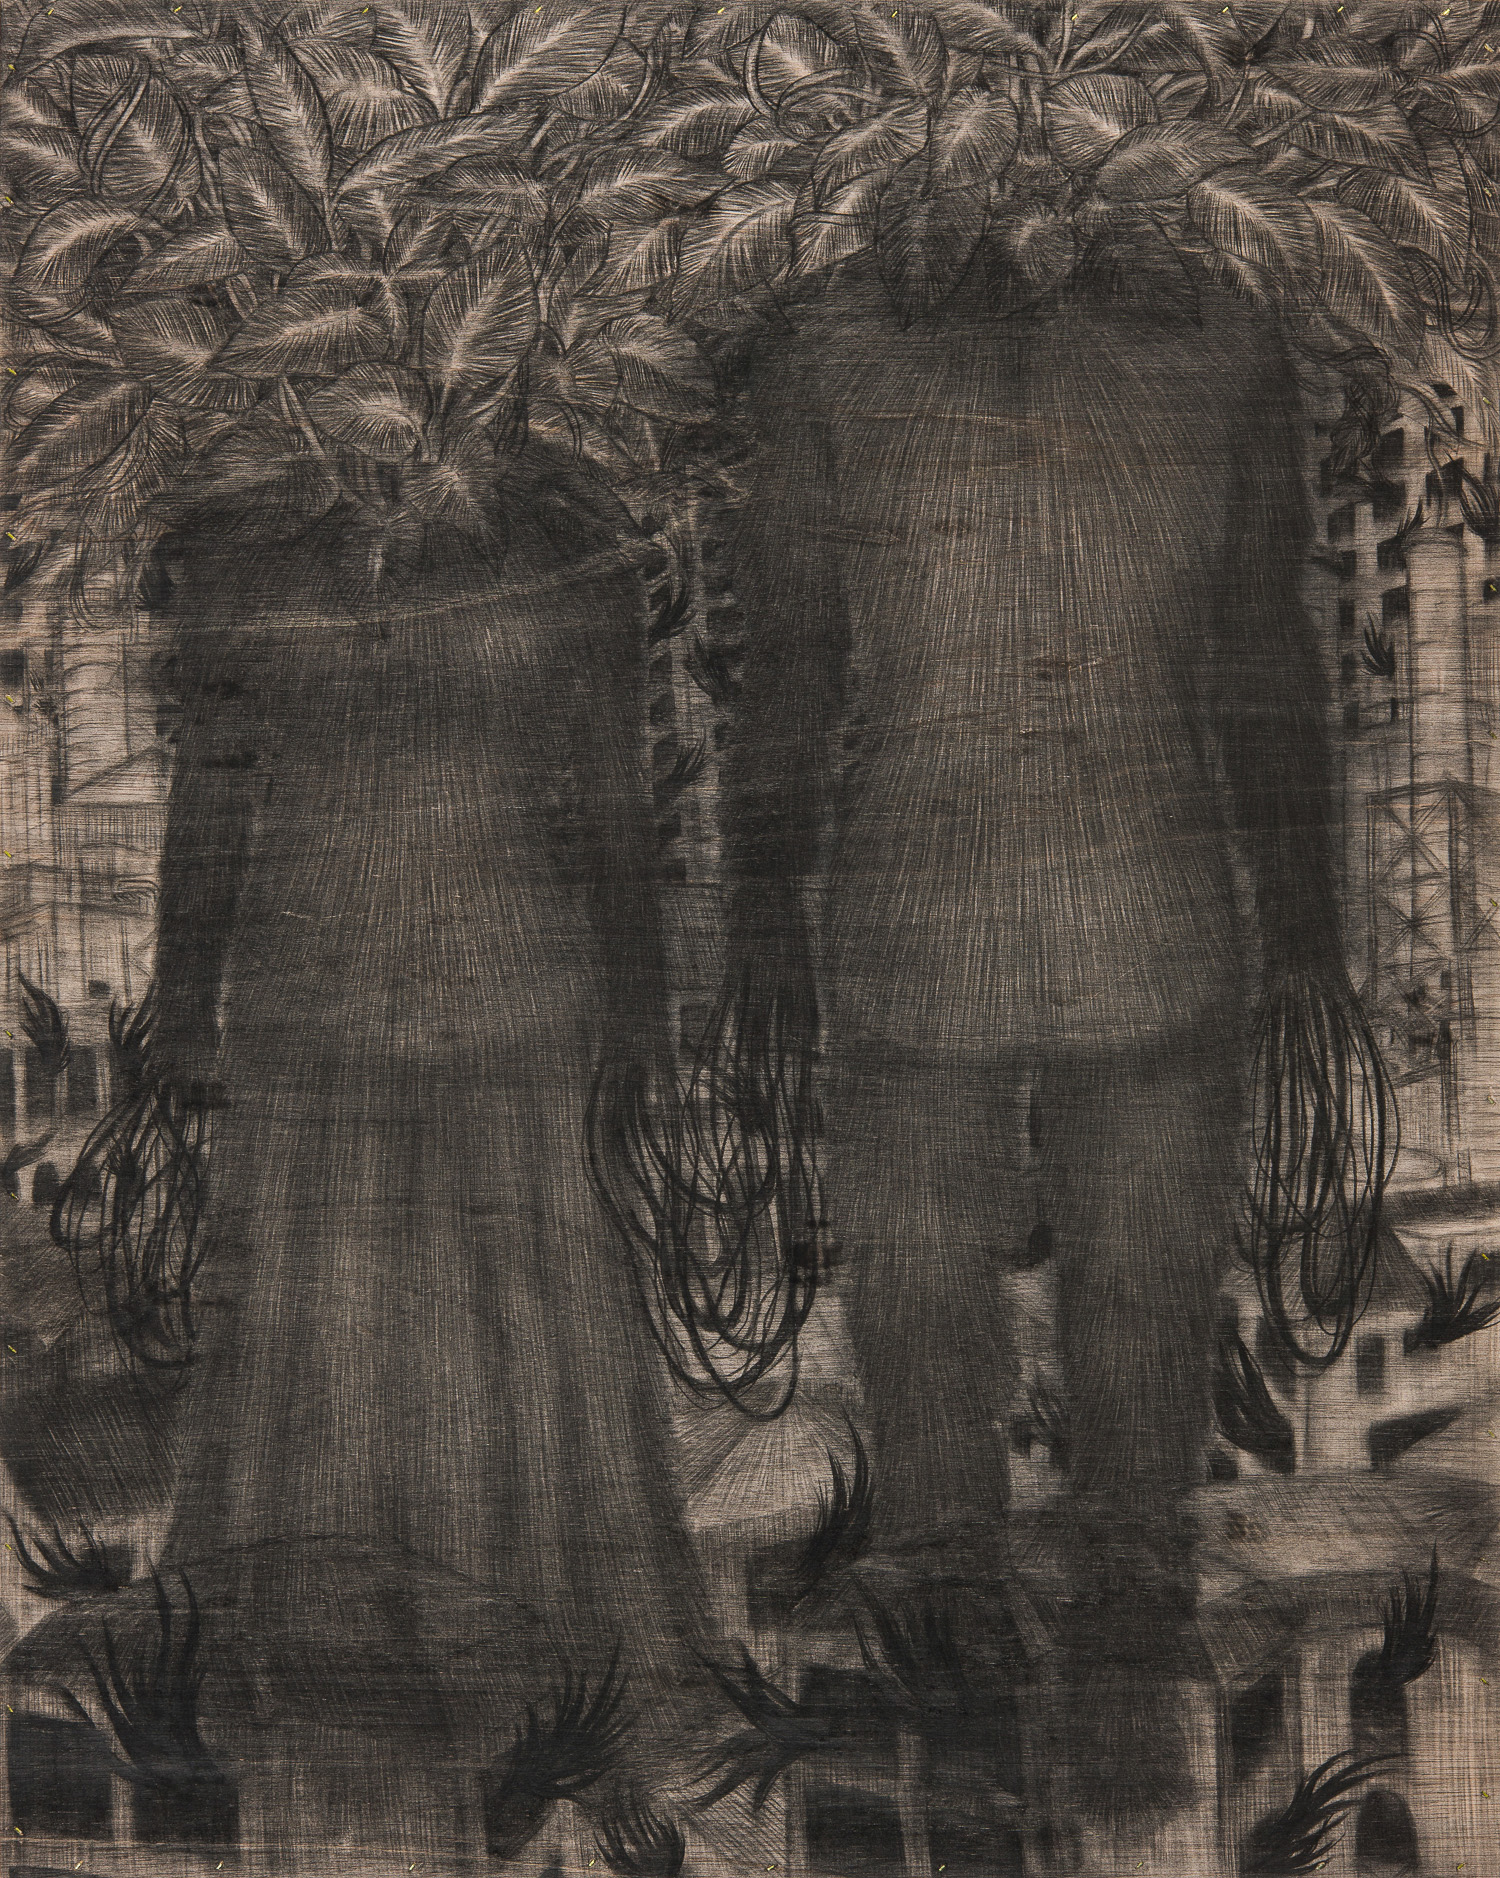 [15p2221] city of two people_conte on wood board_90.9×72.7_2015.jpg